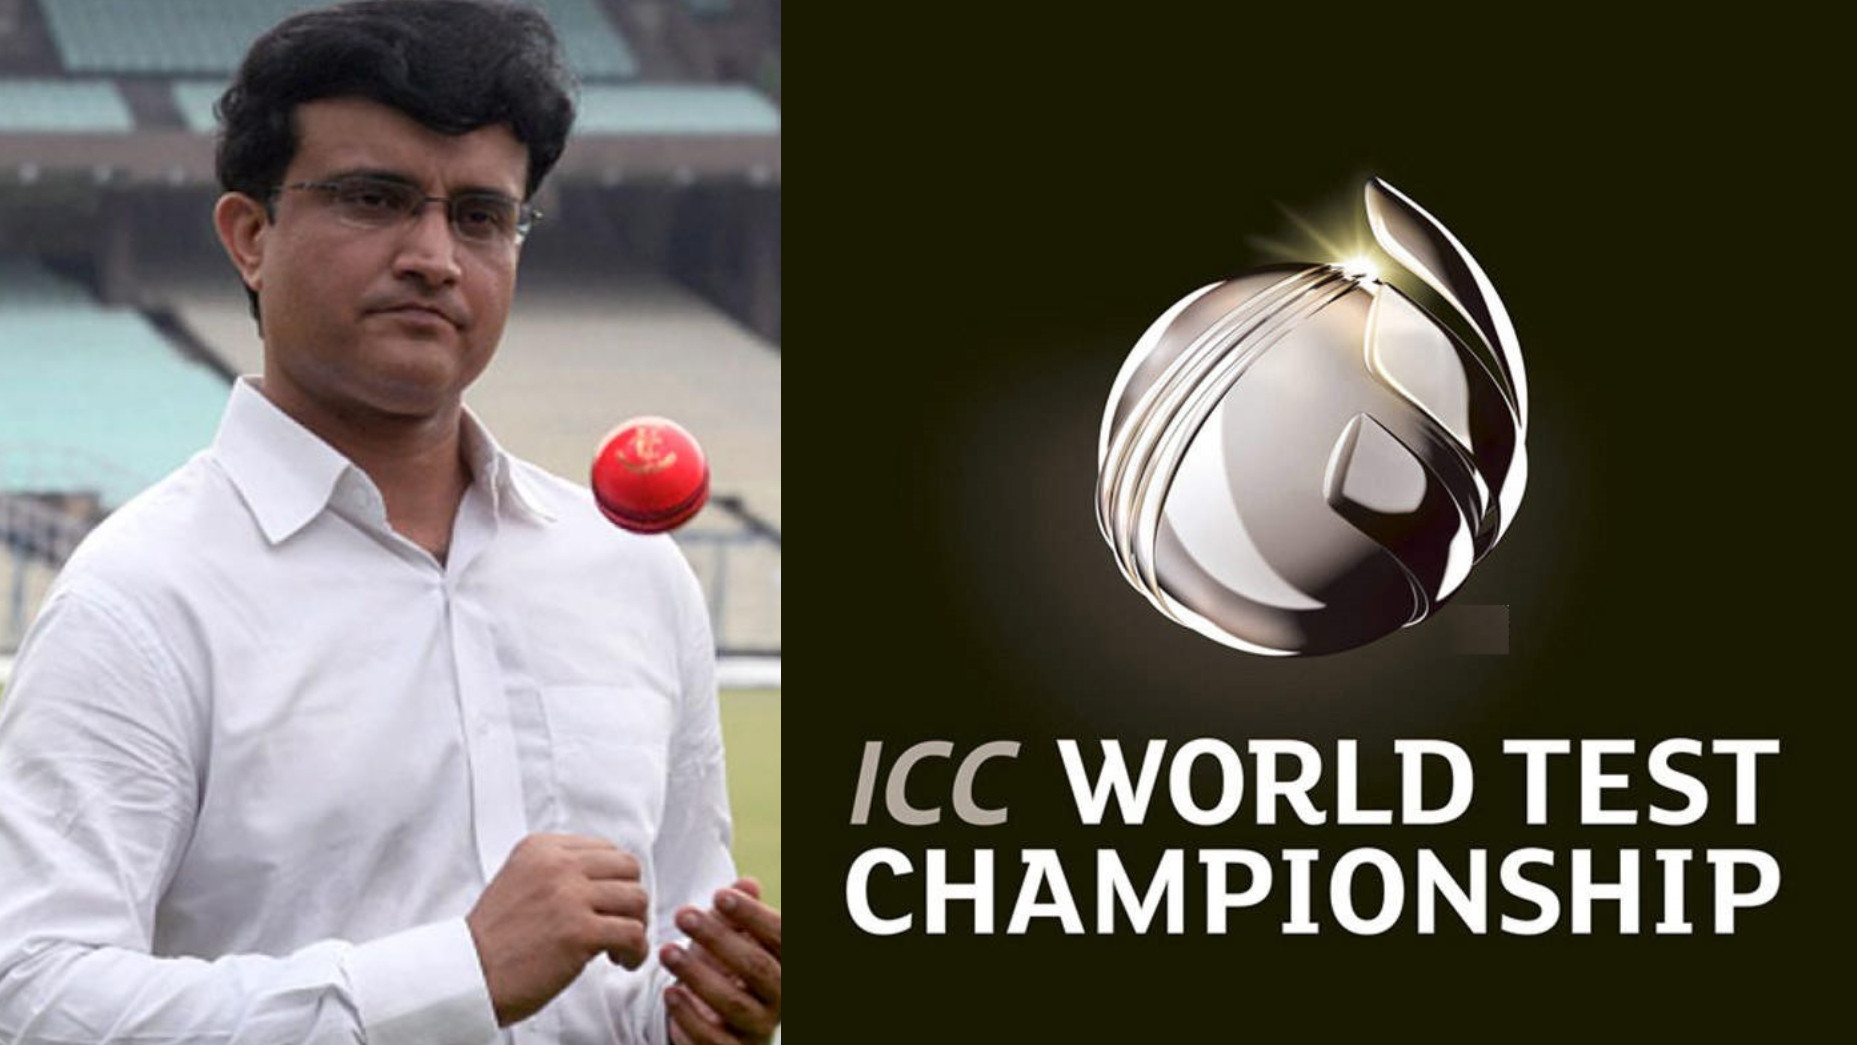 Sourav Ganguly confirms the venue for ICC World Test Championship Final